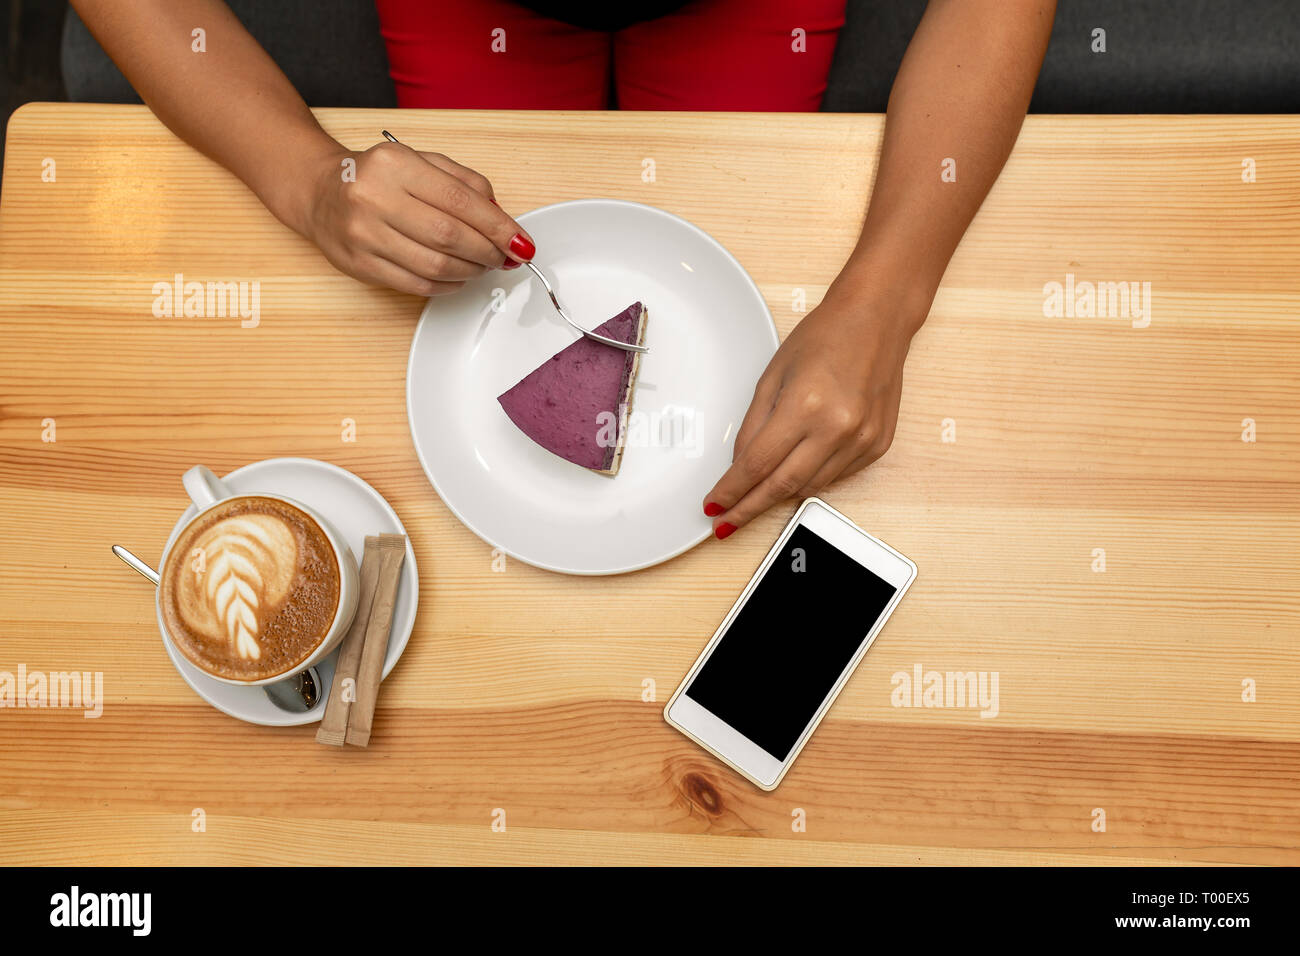 View from above on woman hands on wooden table hold coffe cup near cheesecake and smartphone. Stock Photo